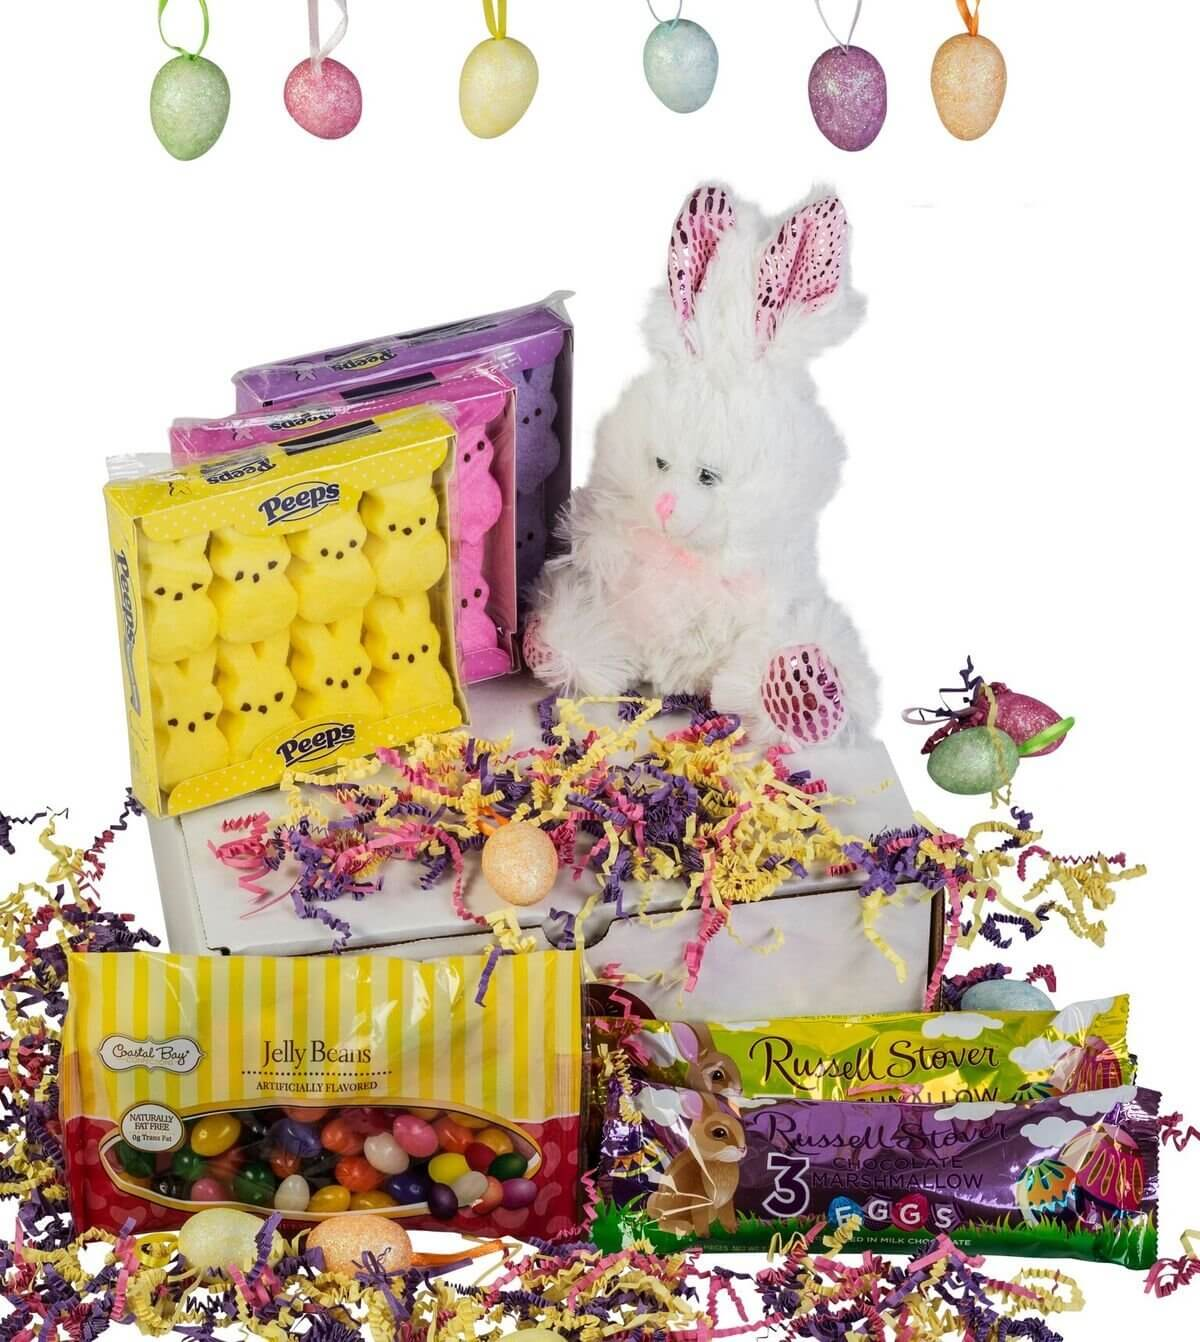 Premium Member Giveaway: Charmed Crates Easter Gift Basket – Bunny, Marshmallows, and Jelly Beans Gift Box Set